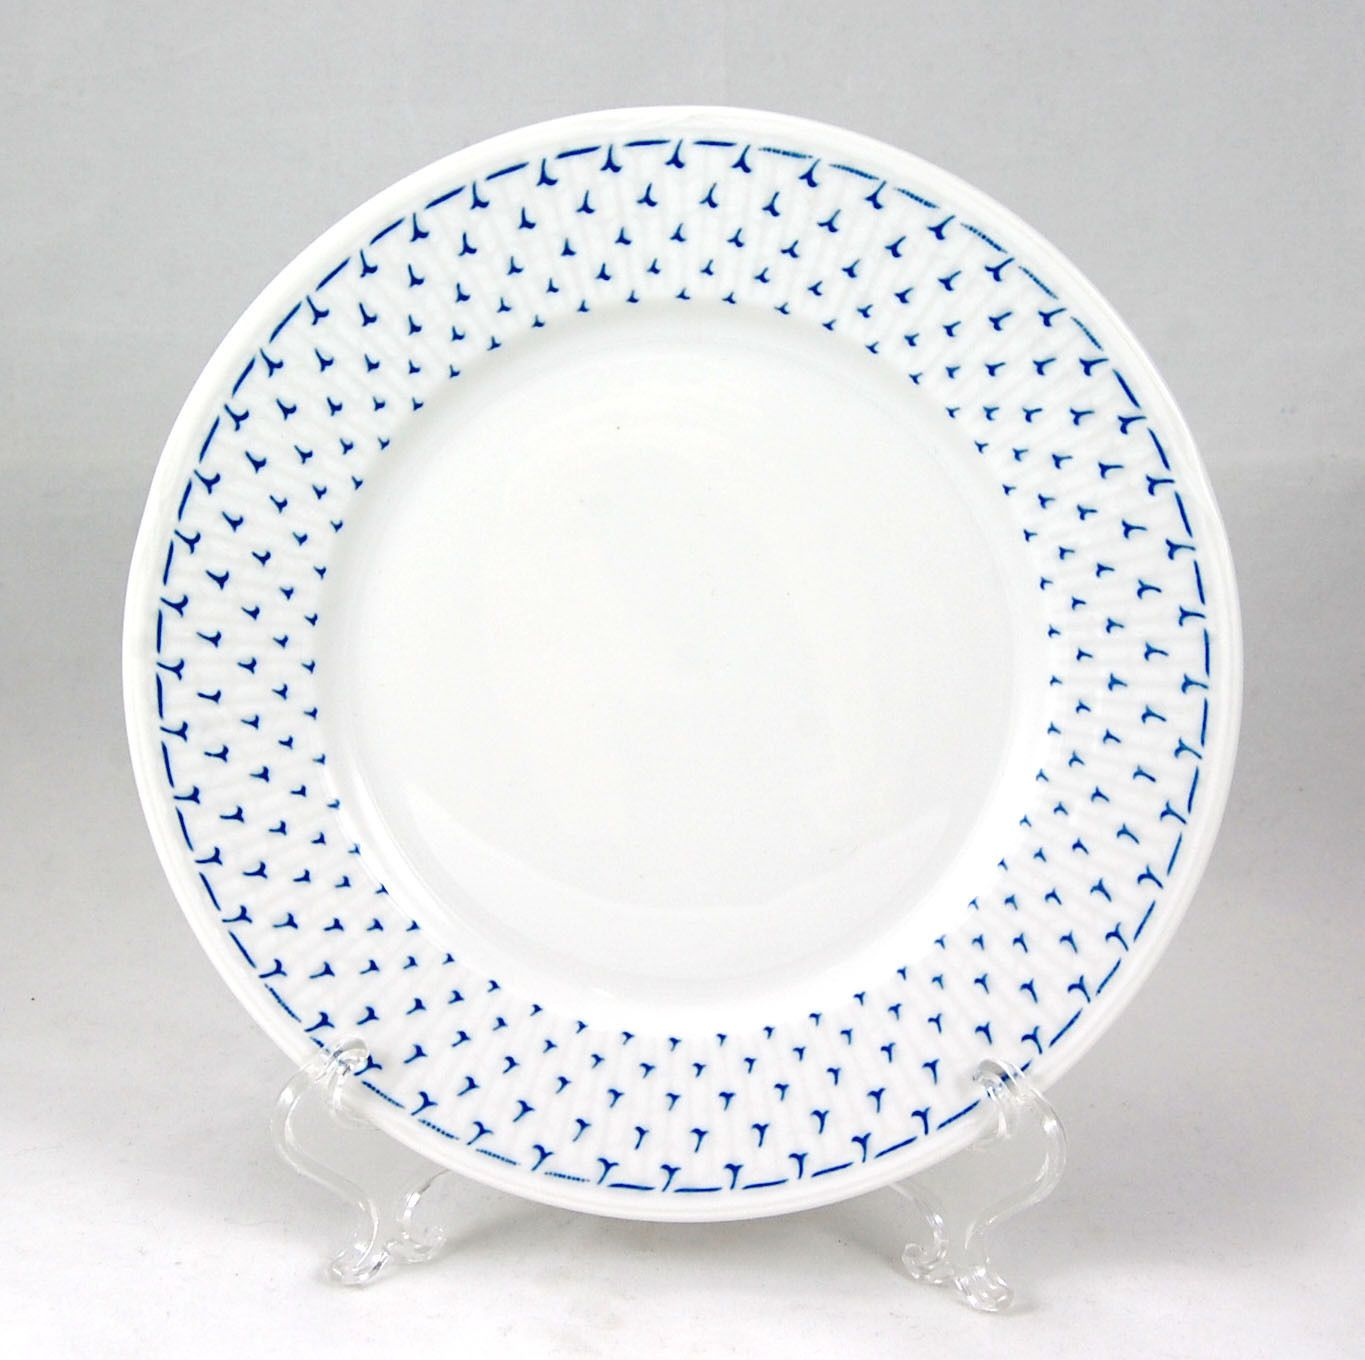 Rorstrand Bla Vinge Unknown Pattern Dessert / Pie Plate 7 in. Ribbed Blue White  sc 1 st  Pinterest & Rorstrand Bla Vinge Unknown Pattern Dessert / Pie Plate 7 in ...